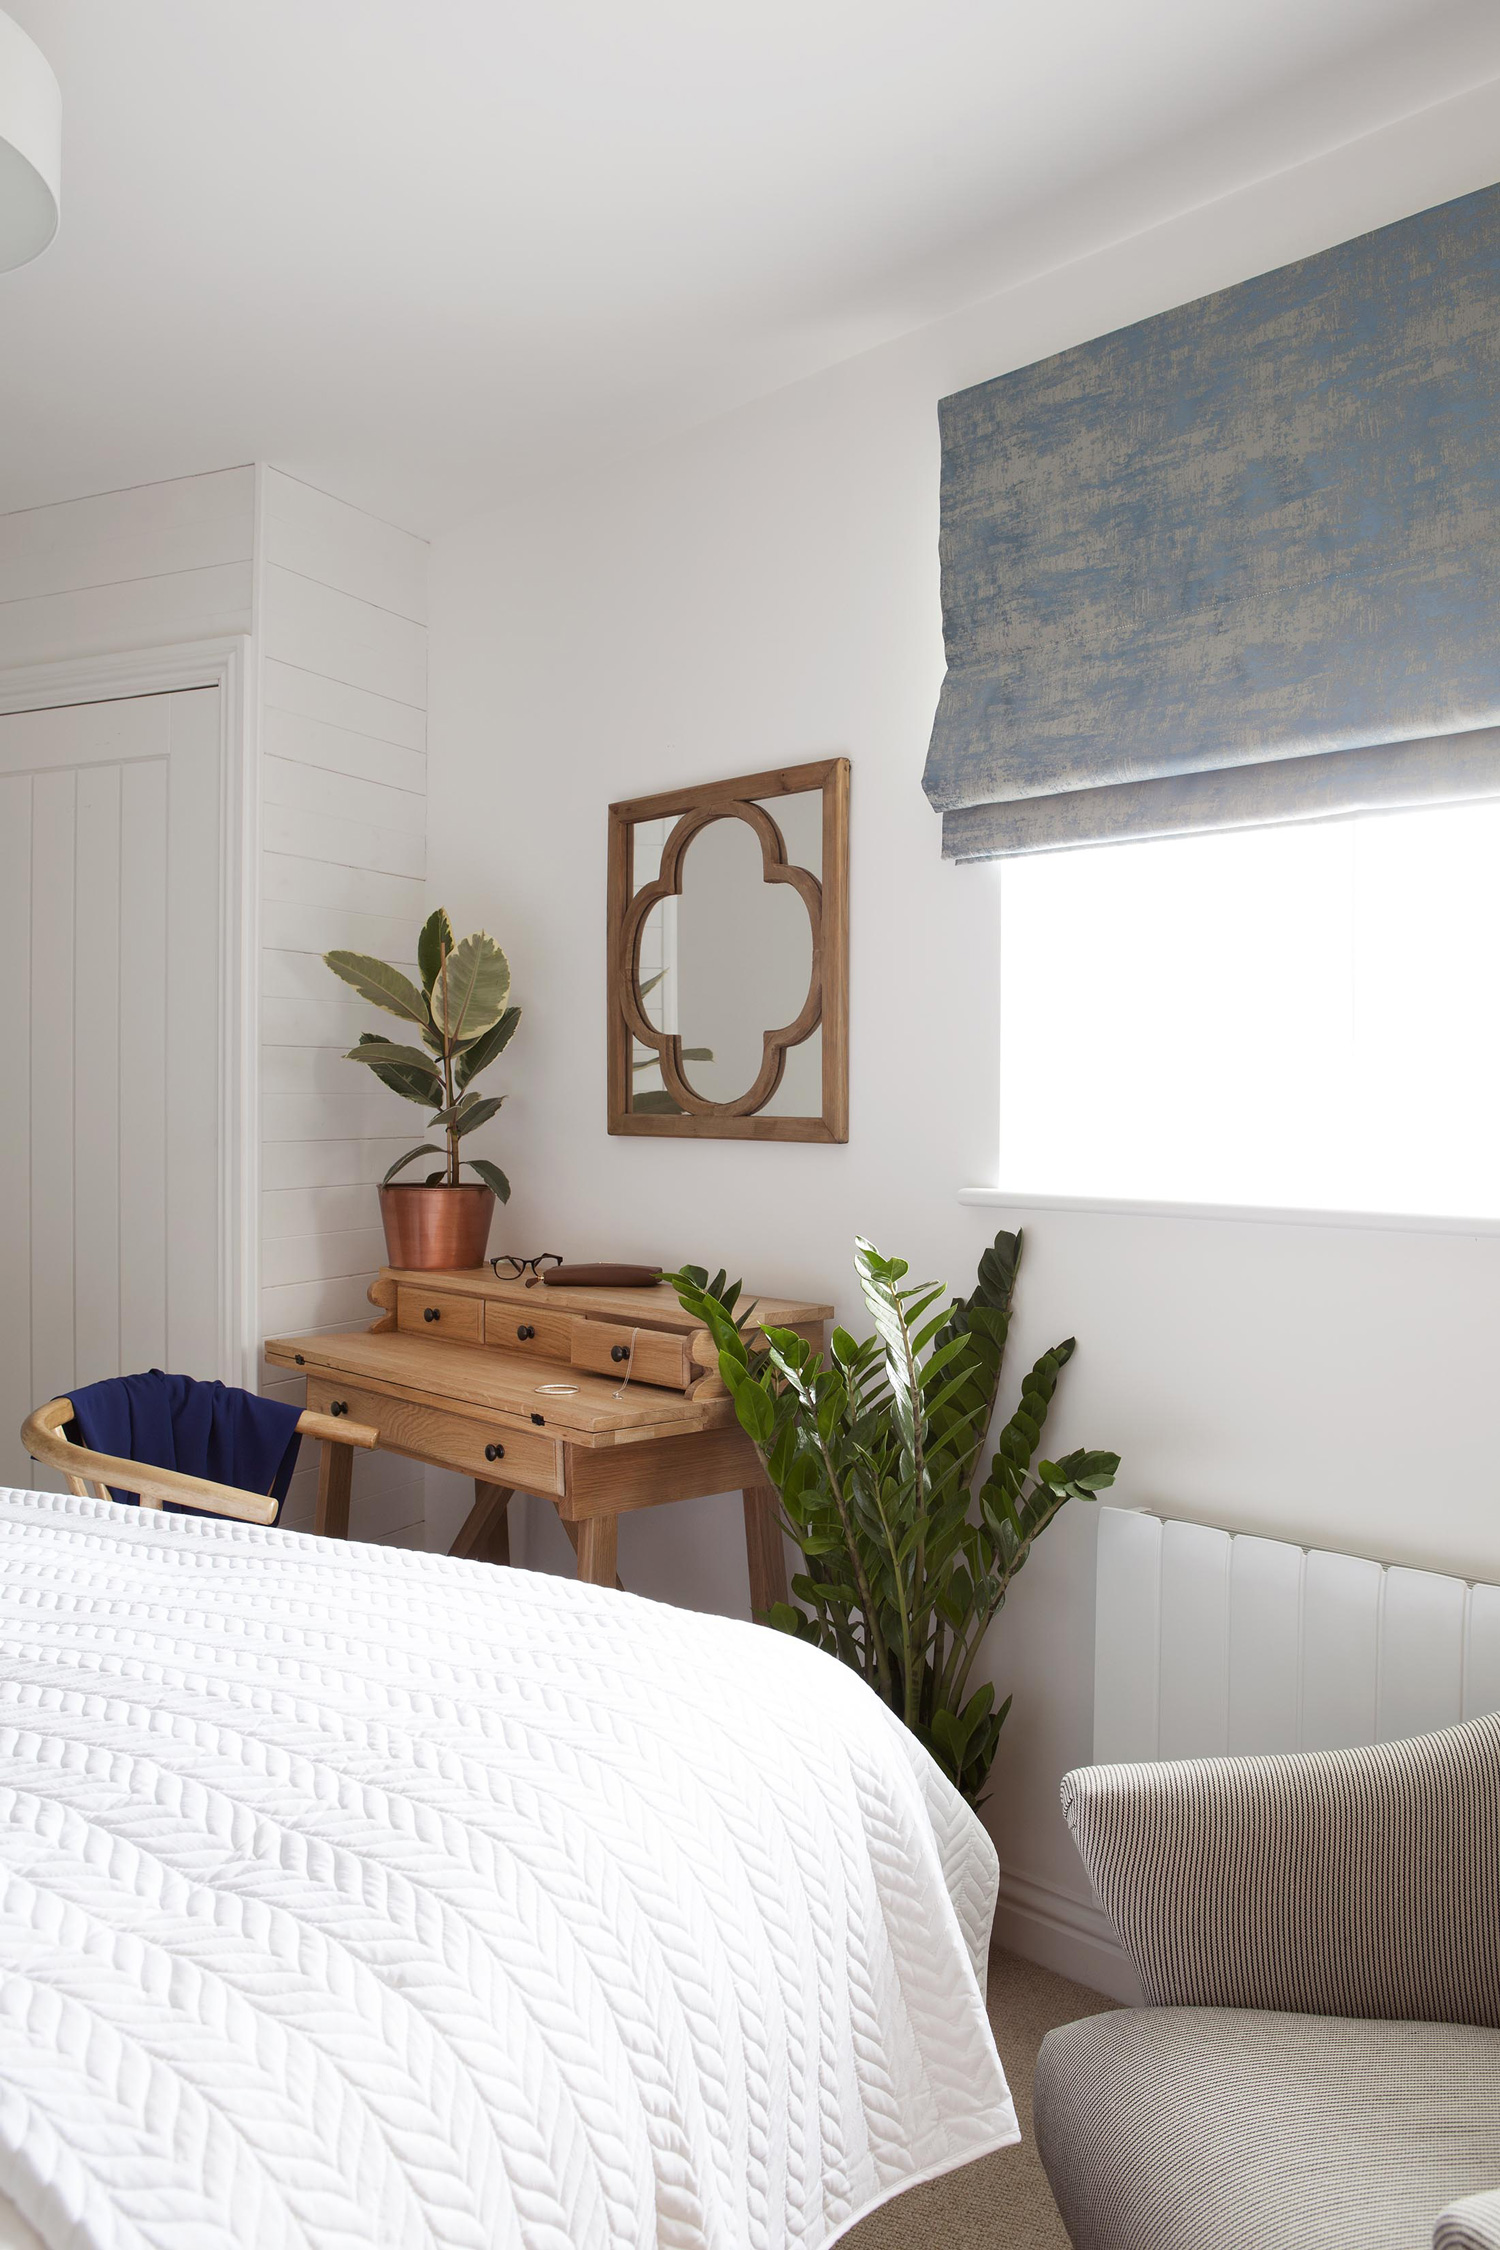 Cornwall Architecture Photographers: Interior shot of a bedroom with coffee table and plant life.